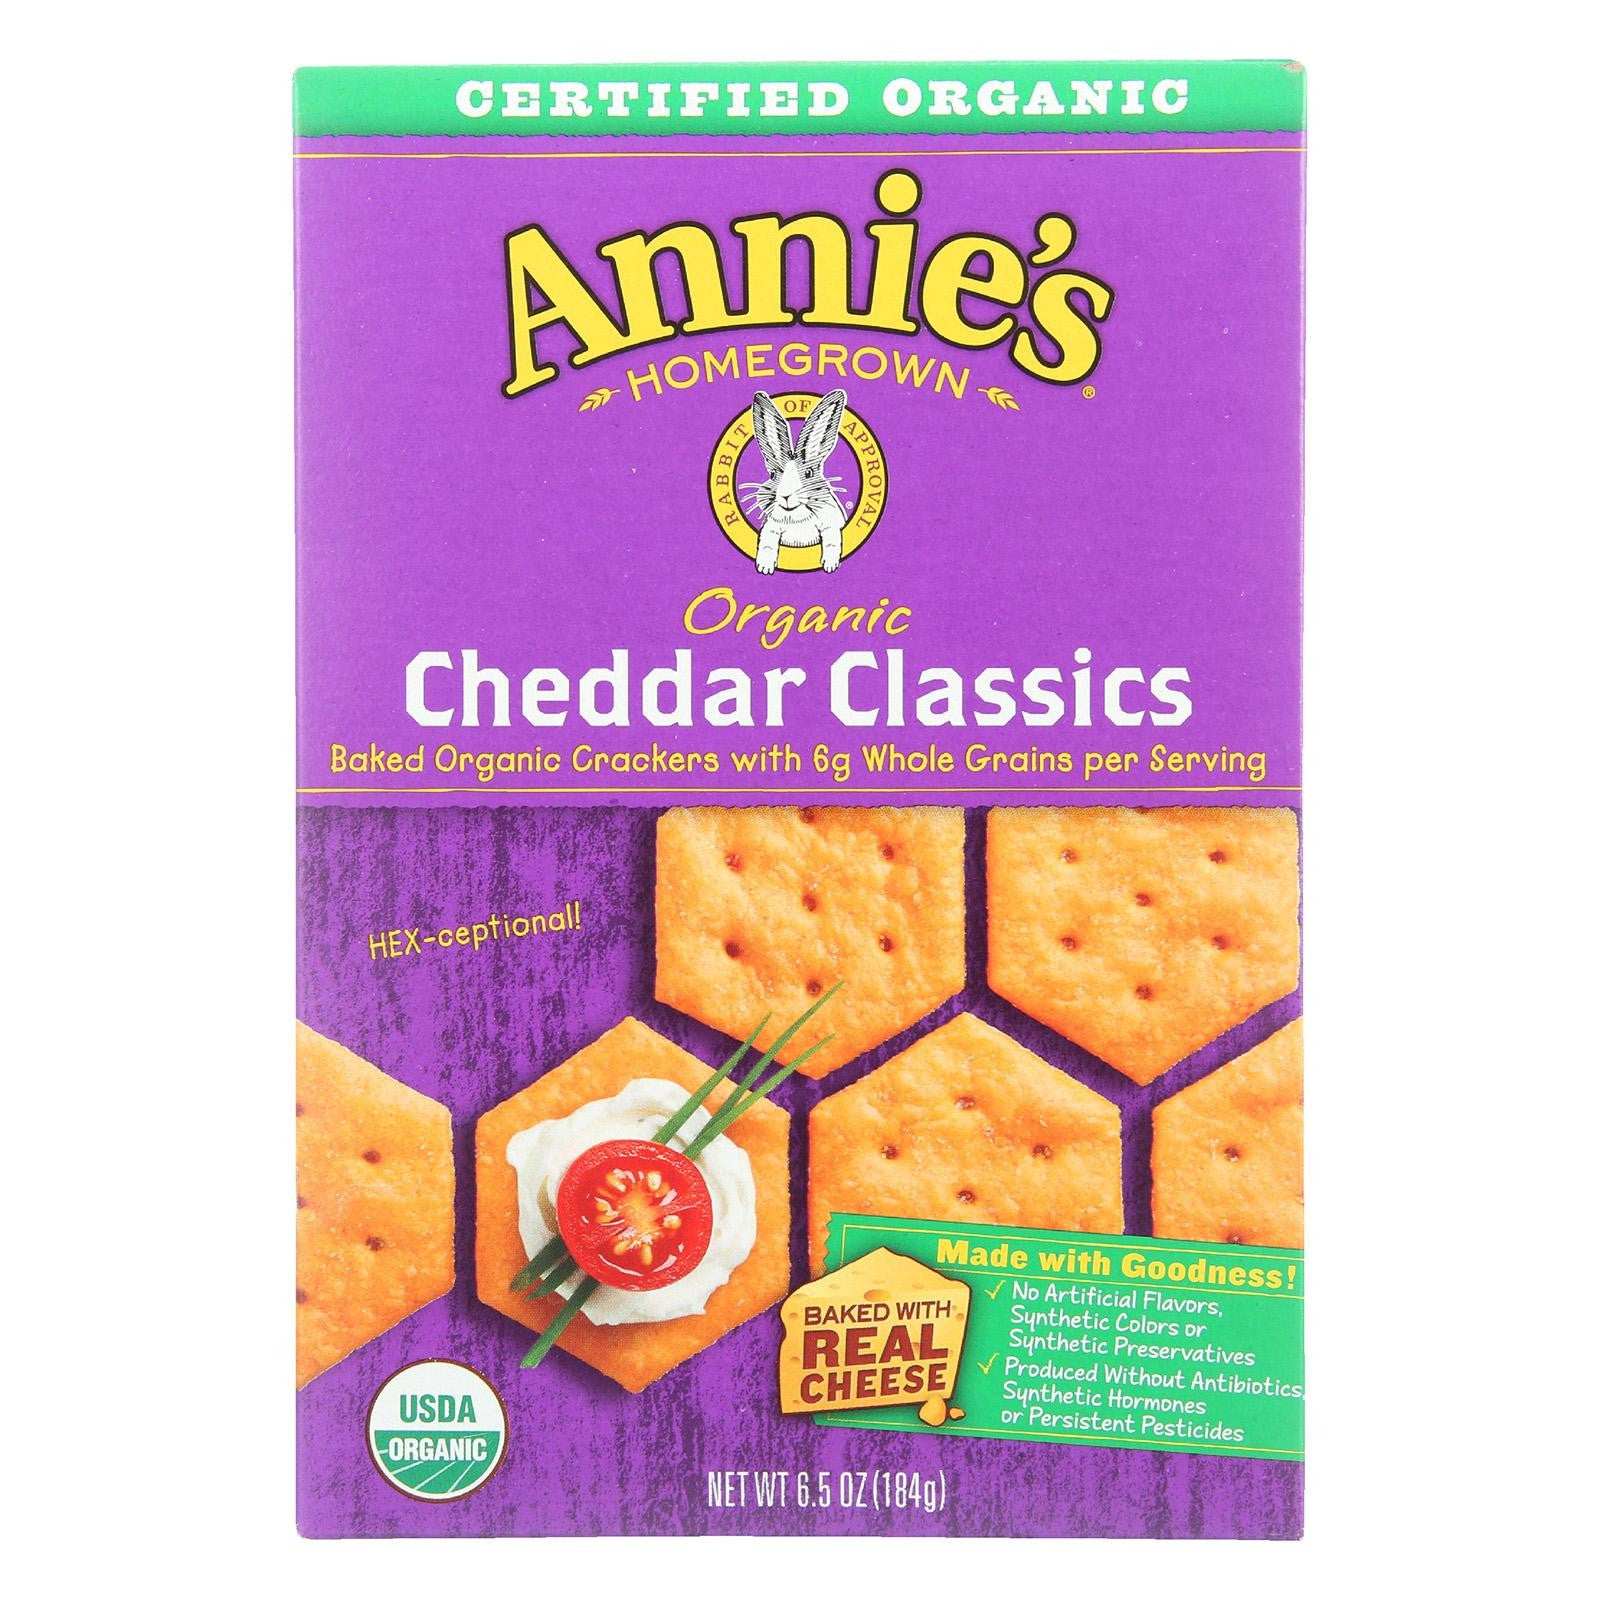 Annie's Homegrown Organic Cheddar Classics Crackers